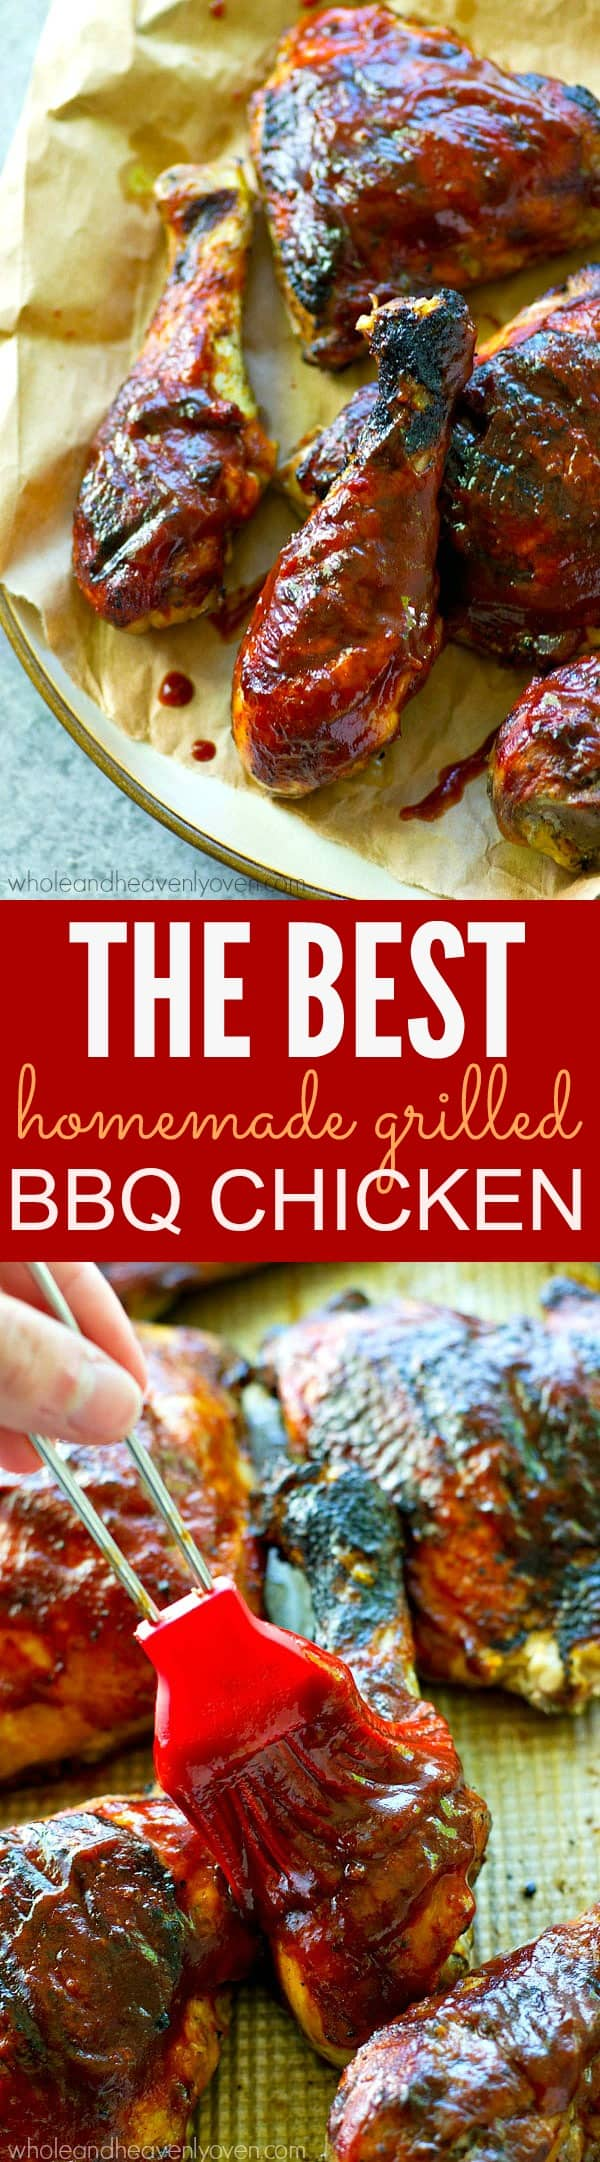 The secret to the best homemade BBQ chicken? Made-from-scratch BBQ sauce and lots of it! This chicken is smothered with tons of flavorful sauce, beautifully smoky, and is the absolute quintessential cookout chicken!